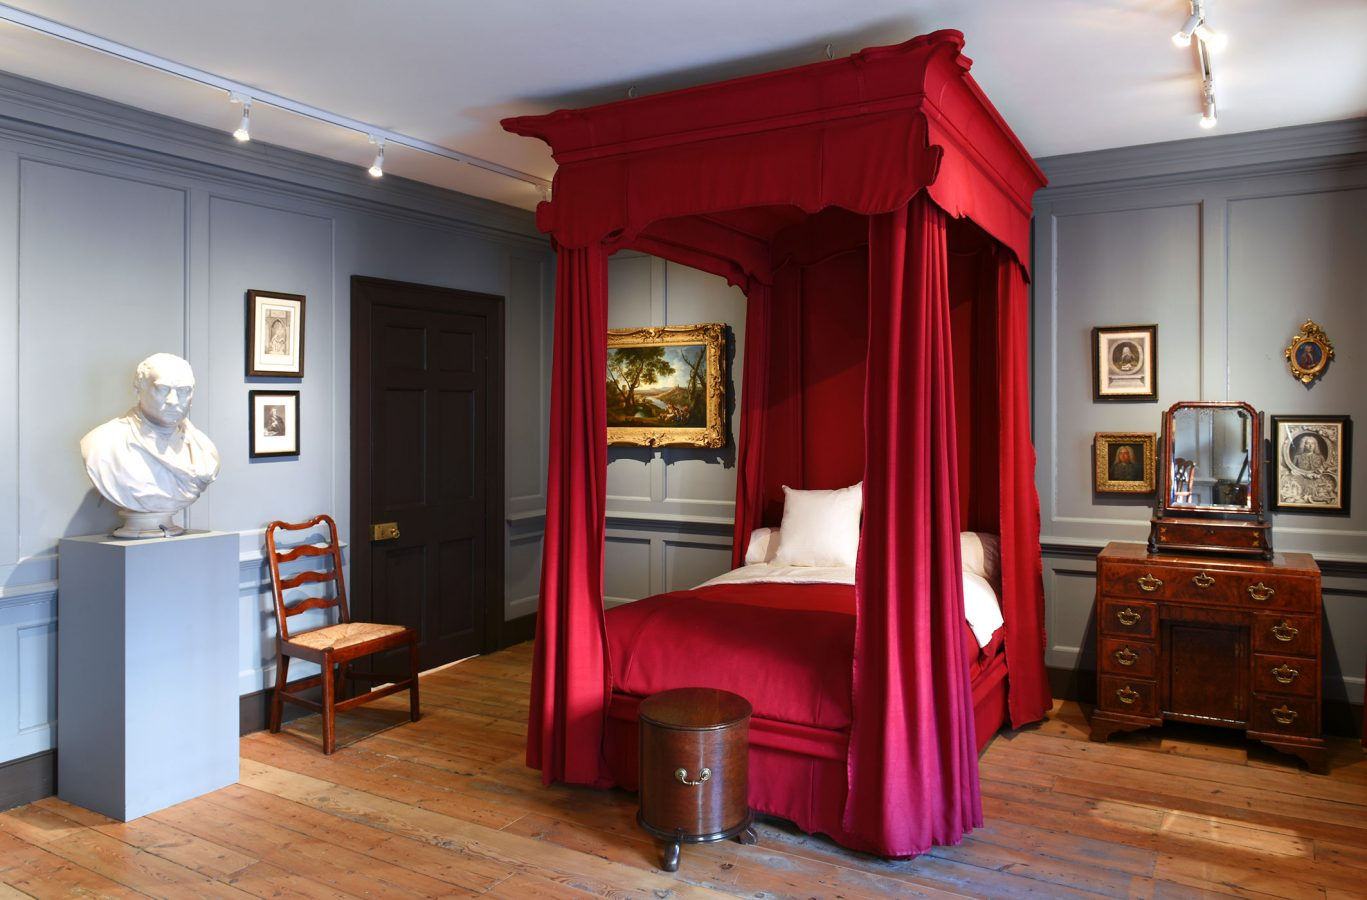 Handel Hendrix in London The Bedroom in which Handel died